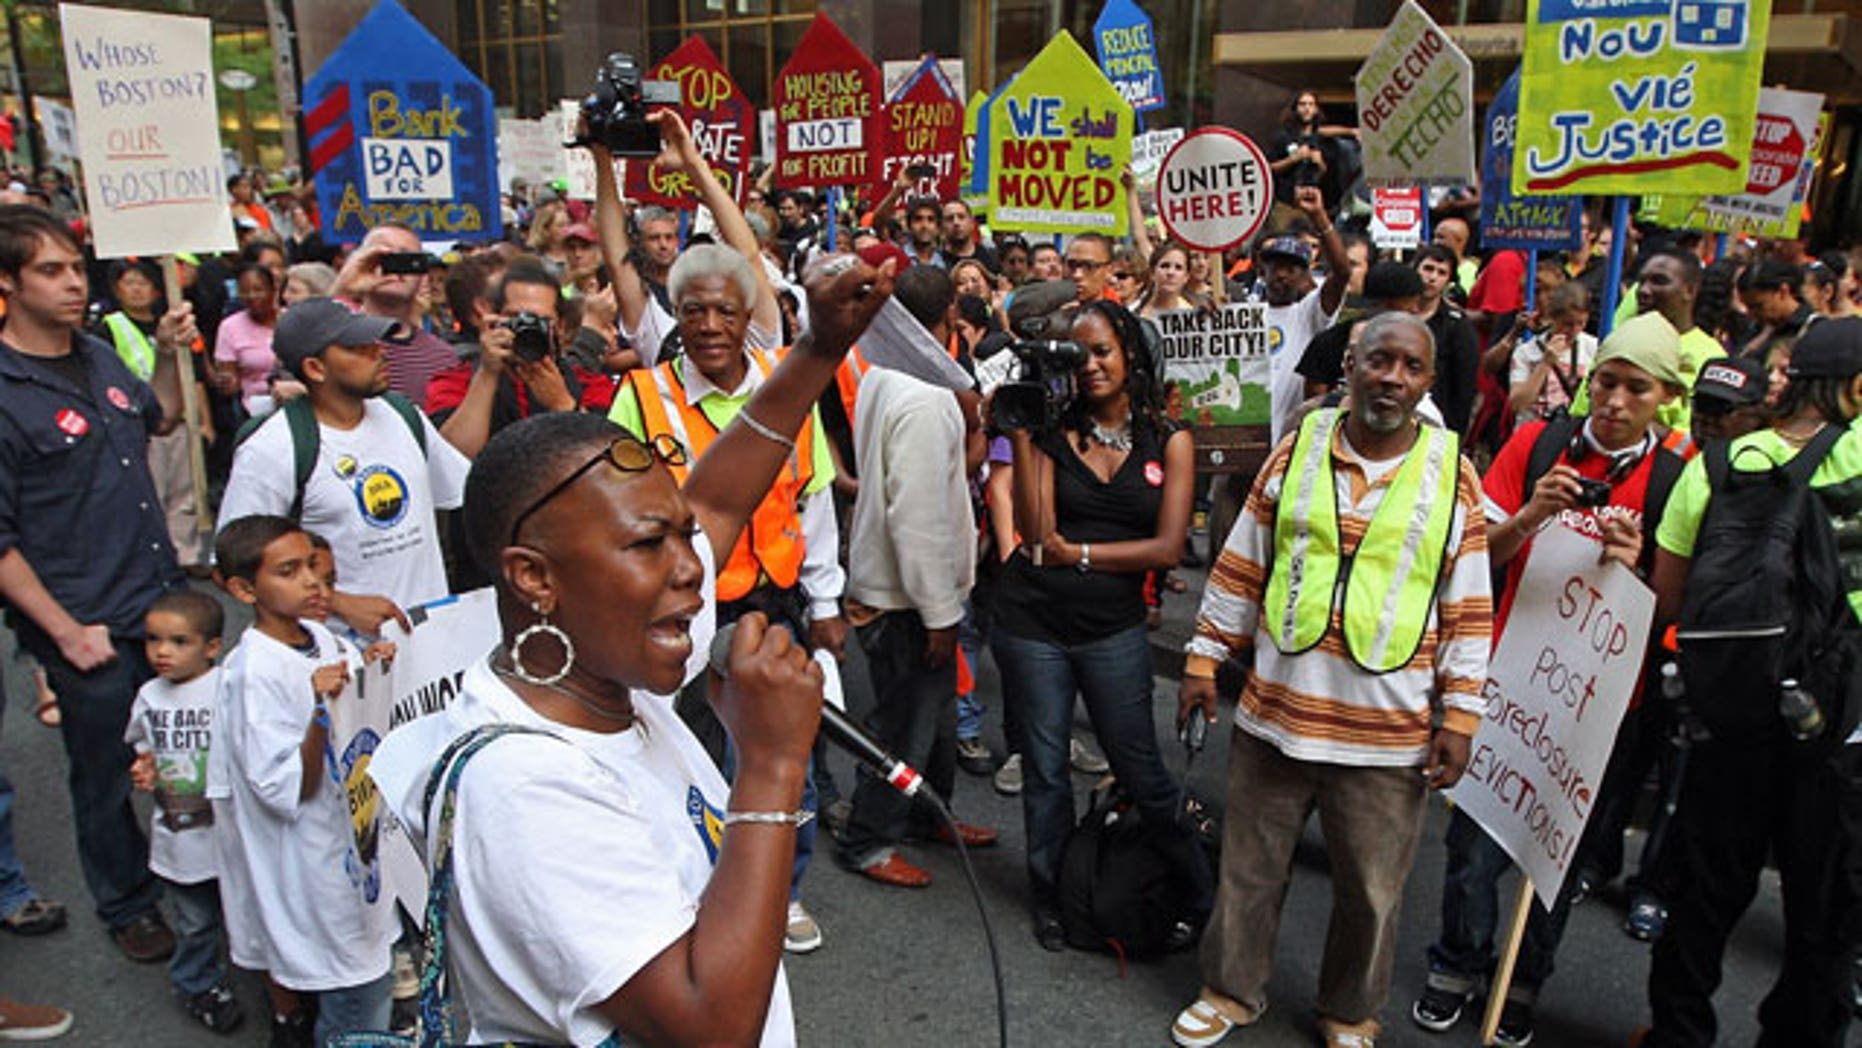 September 30: Protestors from the Boston Workers Alliance march in front of a Bank of America office.